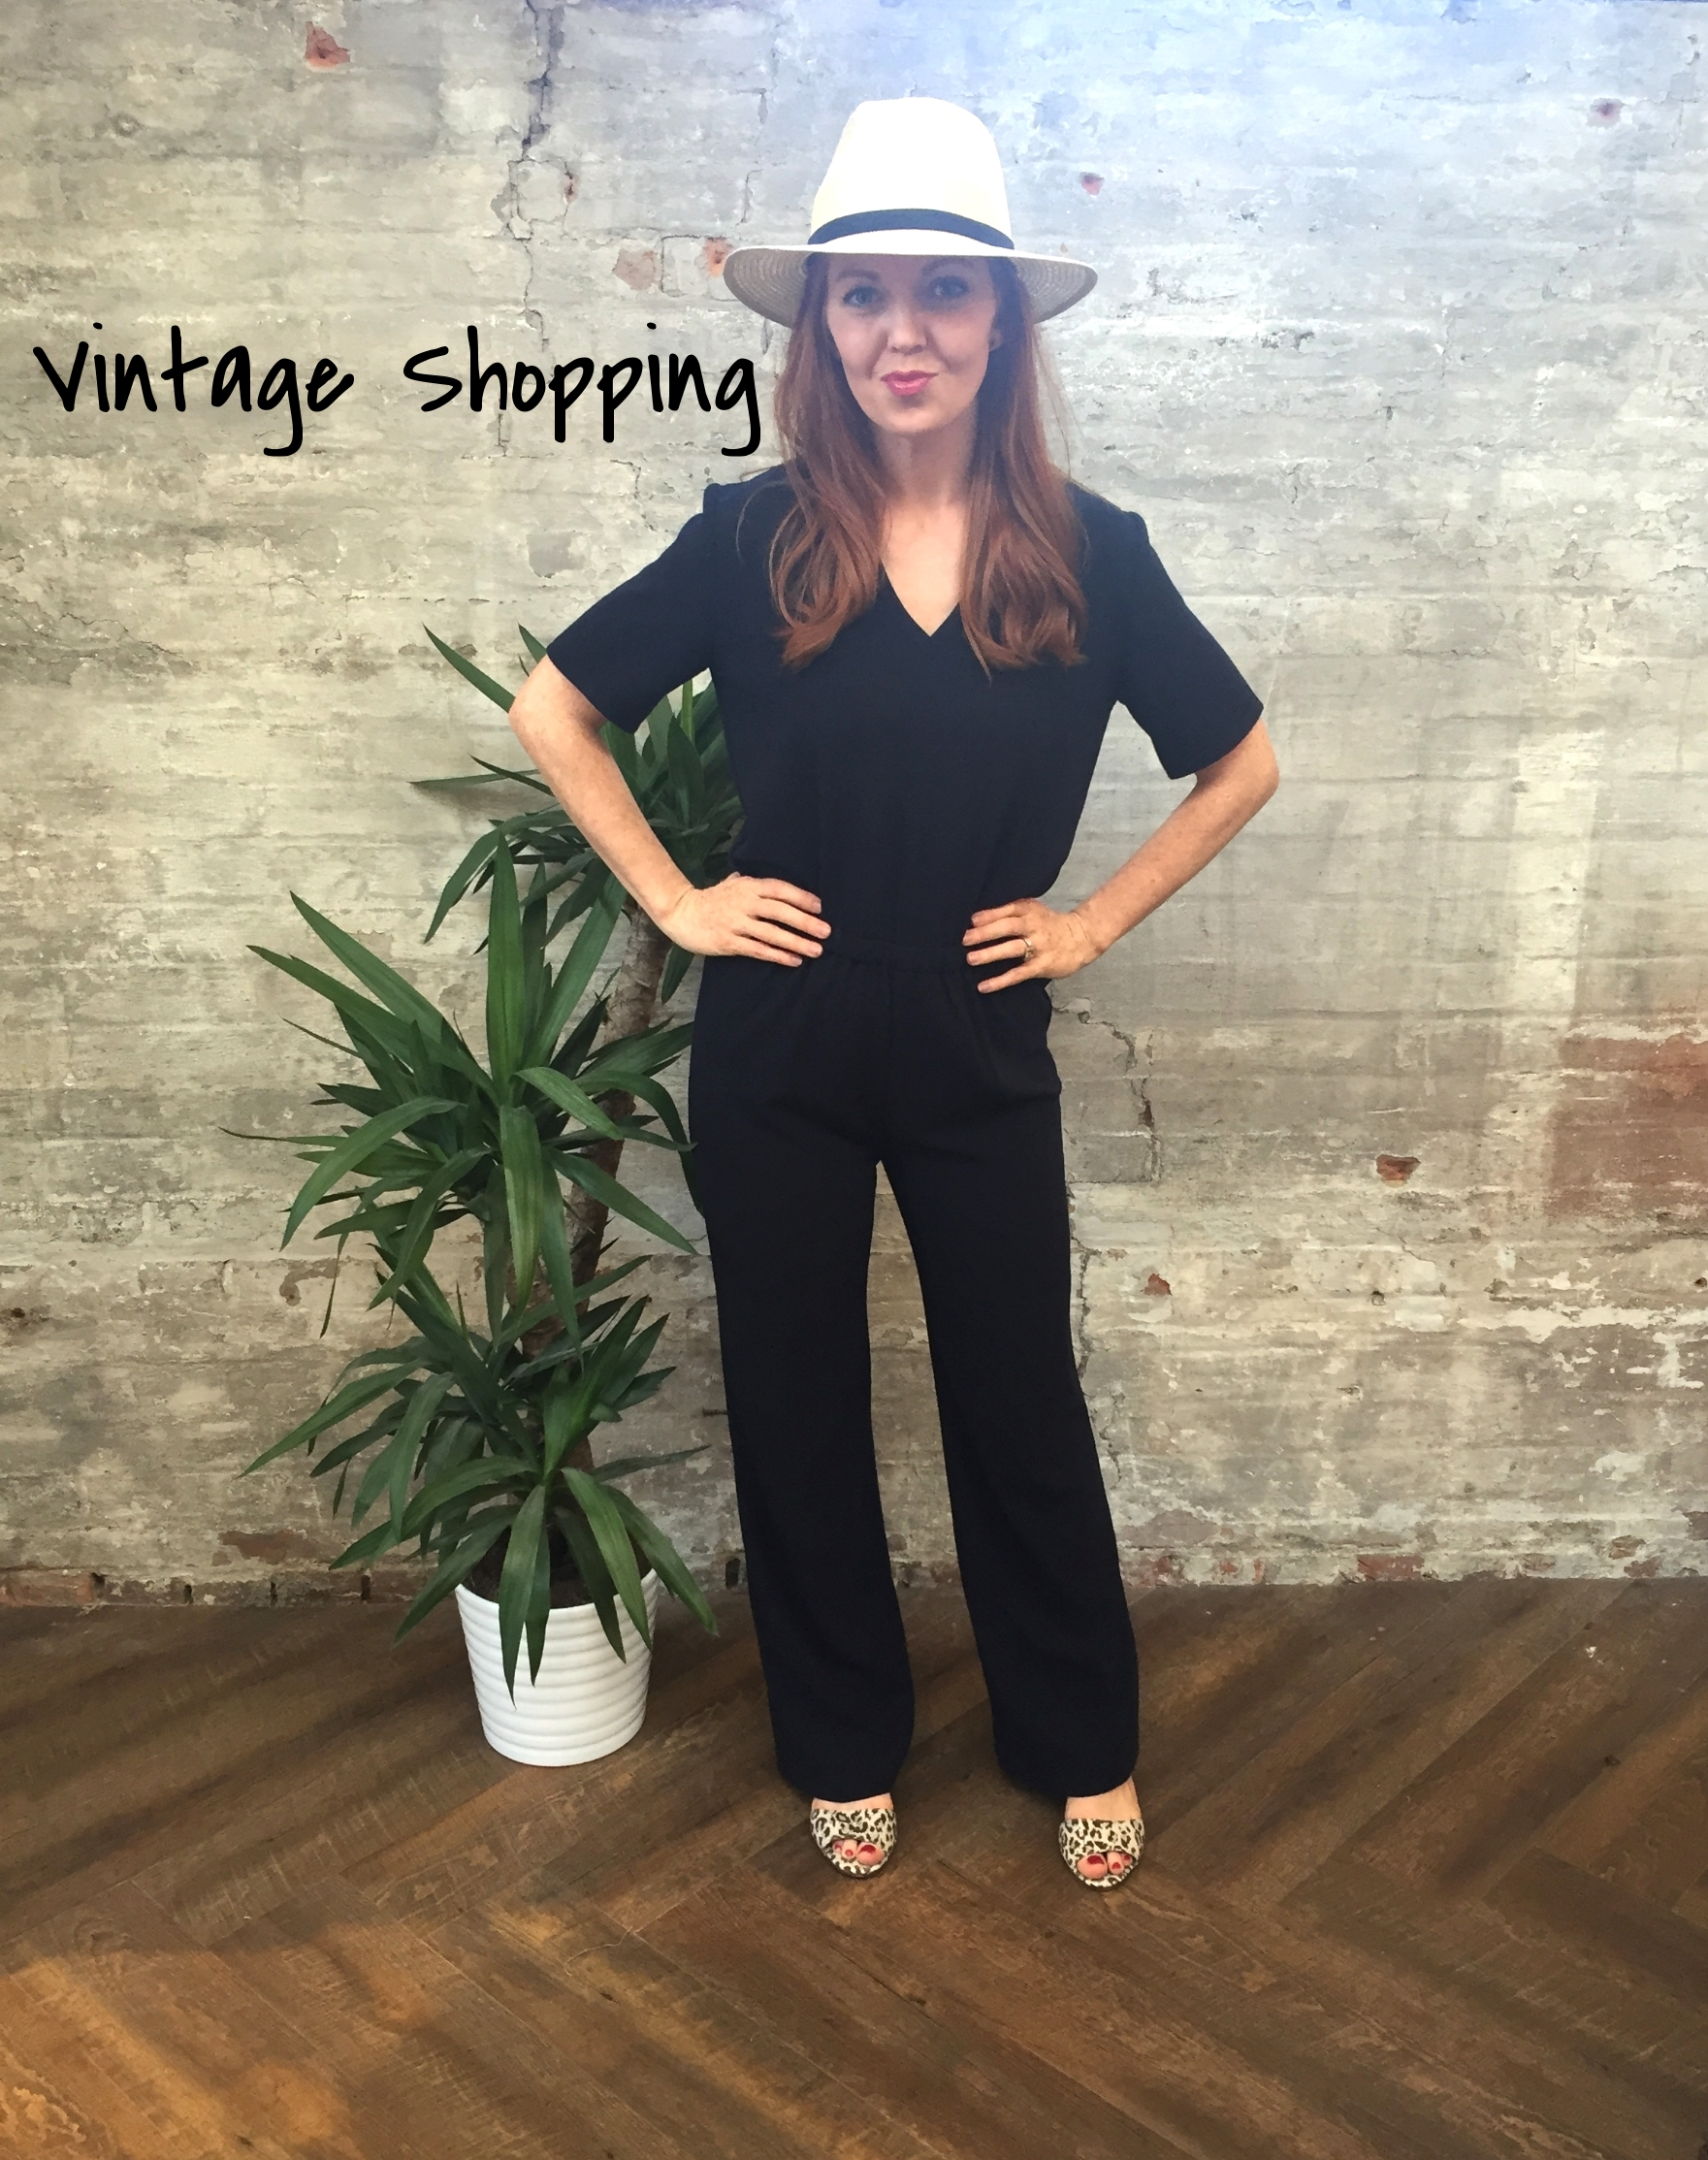 Toronto has a vibrant vintage scene, full of unique shops, markets and estate sales. Take advantage of the warm weather months to explore hidden gems from all sides of the city.Grab an easy, fashionable outfit paired with statement accessory and you're good to go - because you never know who's street style photo you could end up in!  Just Female Jumpsuit $218 Brixton Straw Hat $95  Tip: Check out the Vintage Crawl and other arts tours this summer for free fun!